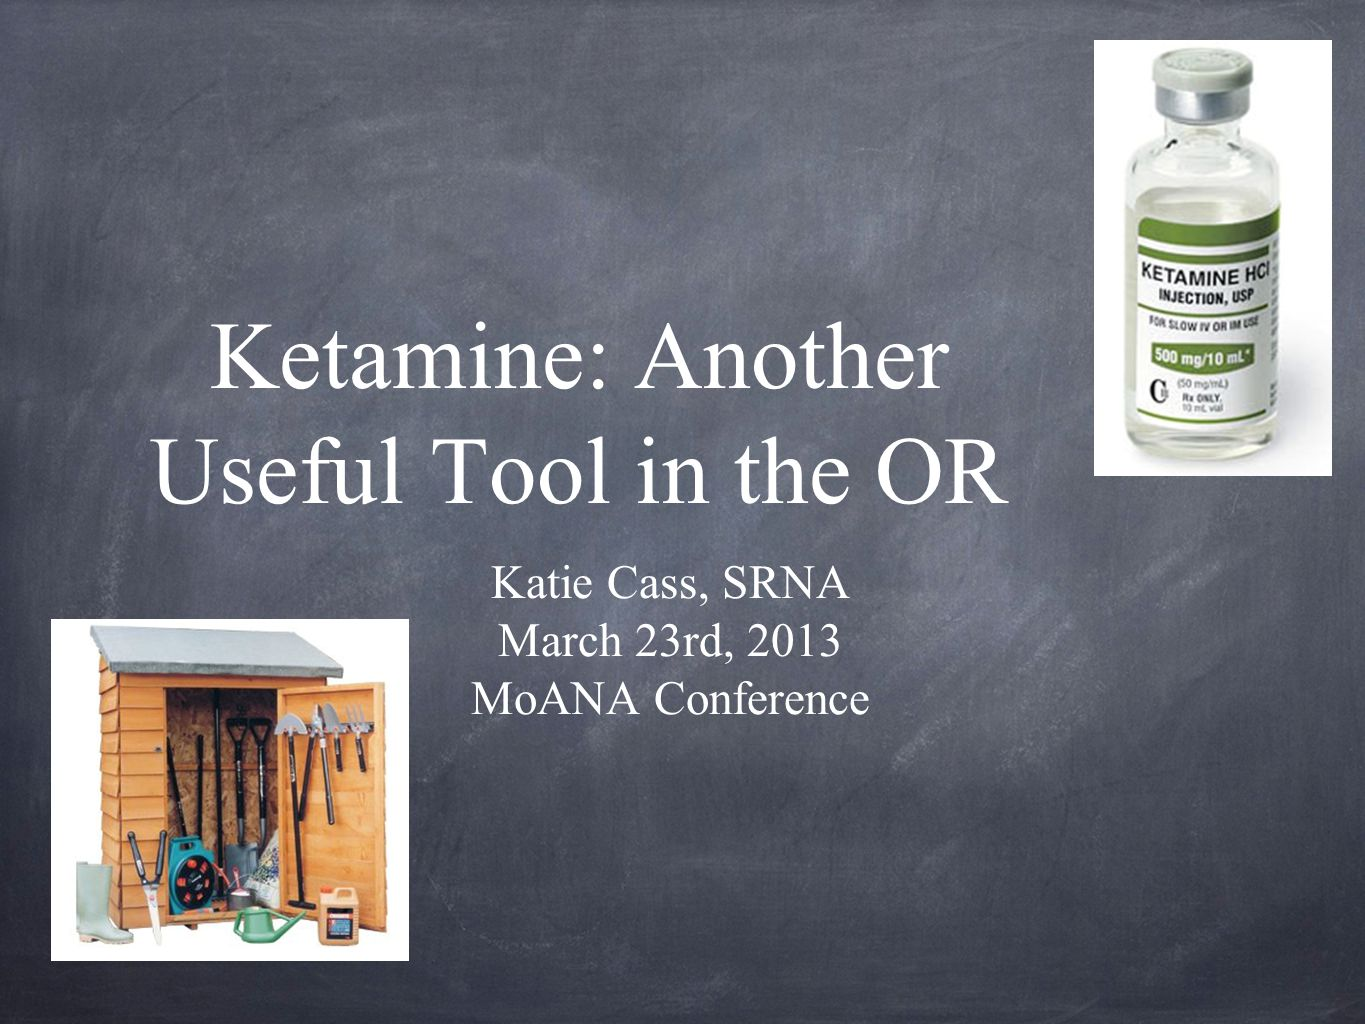 Ketamine: Another Useful Tool in the OR Katie Cass, SRNA March 23rd, 2013 MoANA Conference